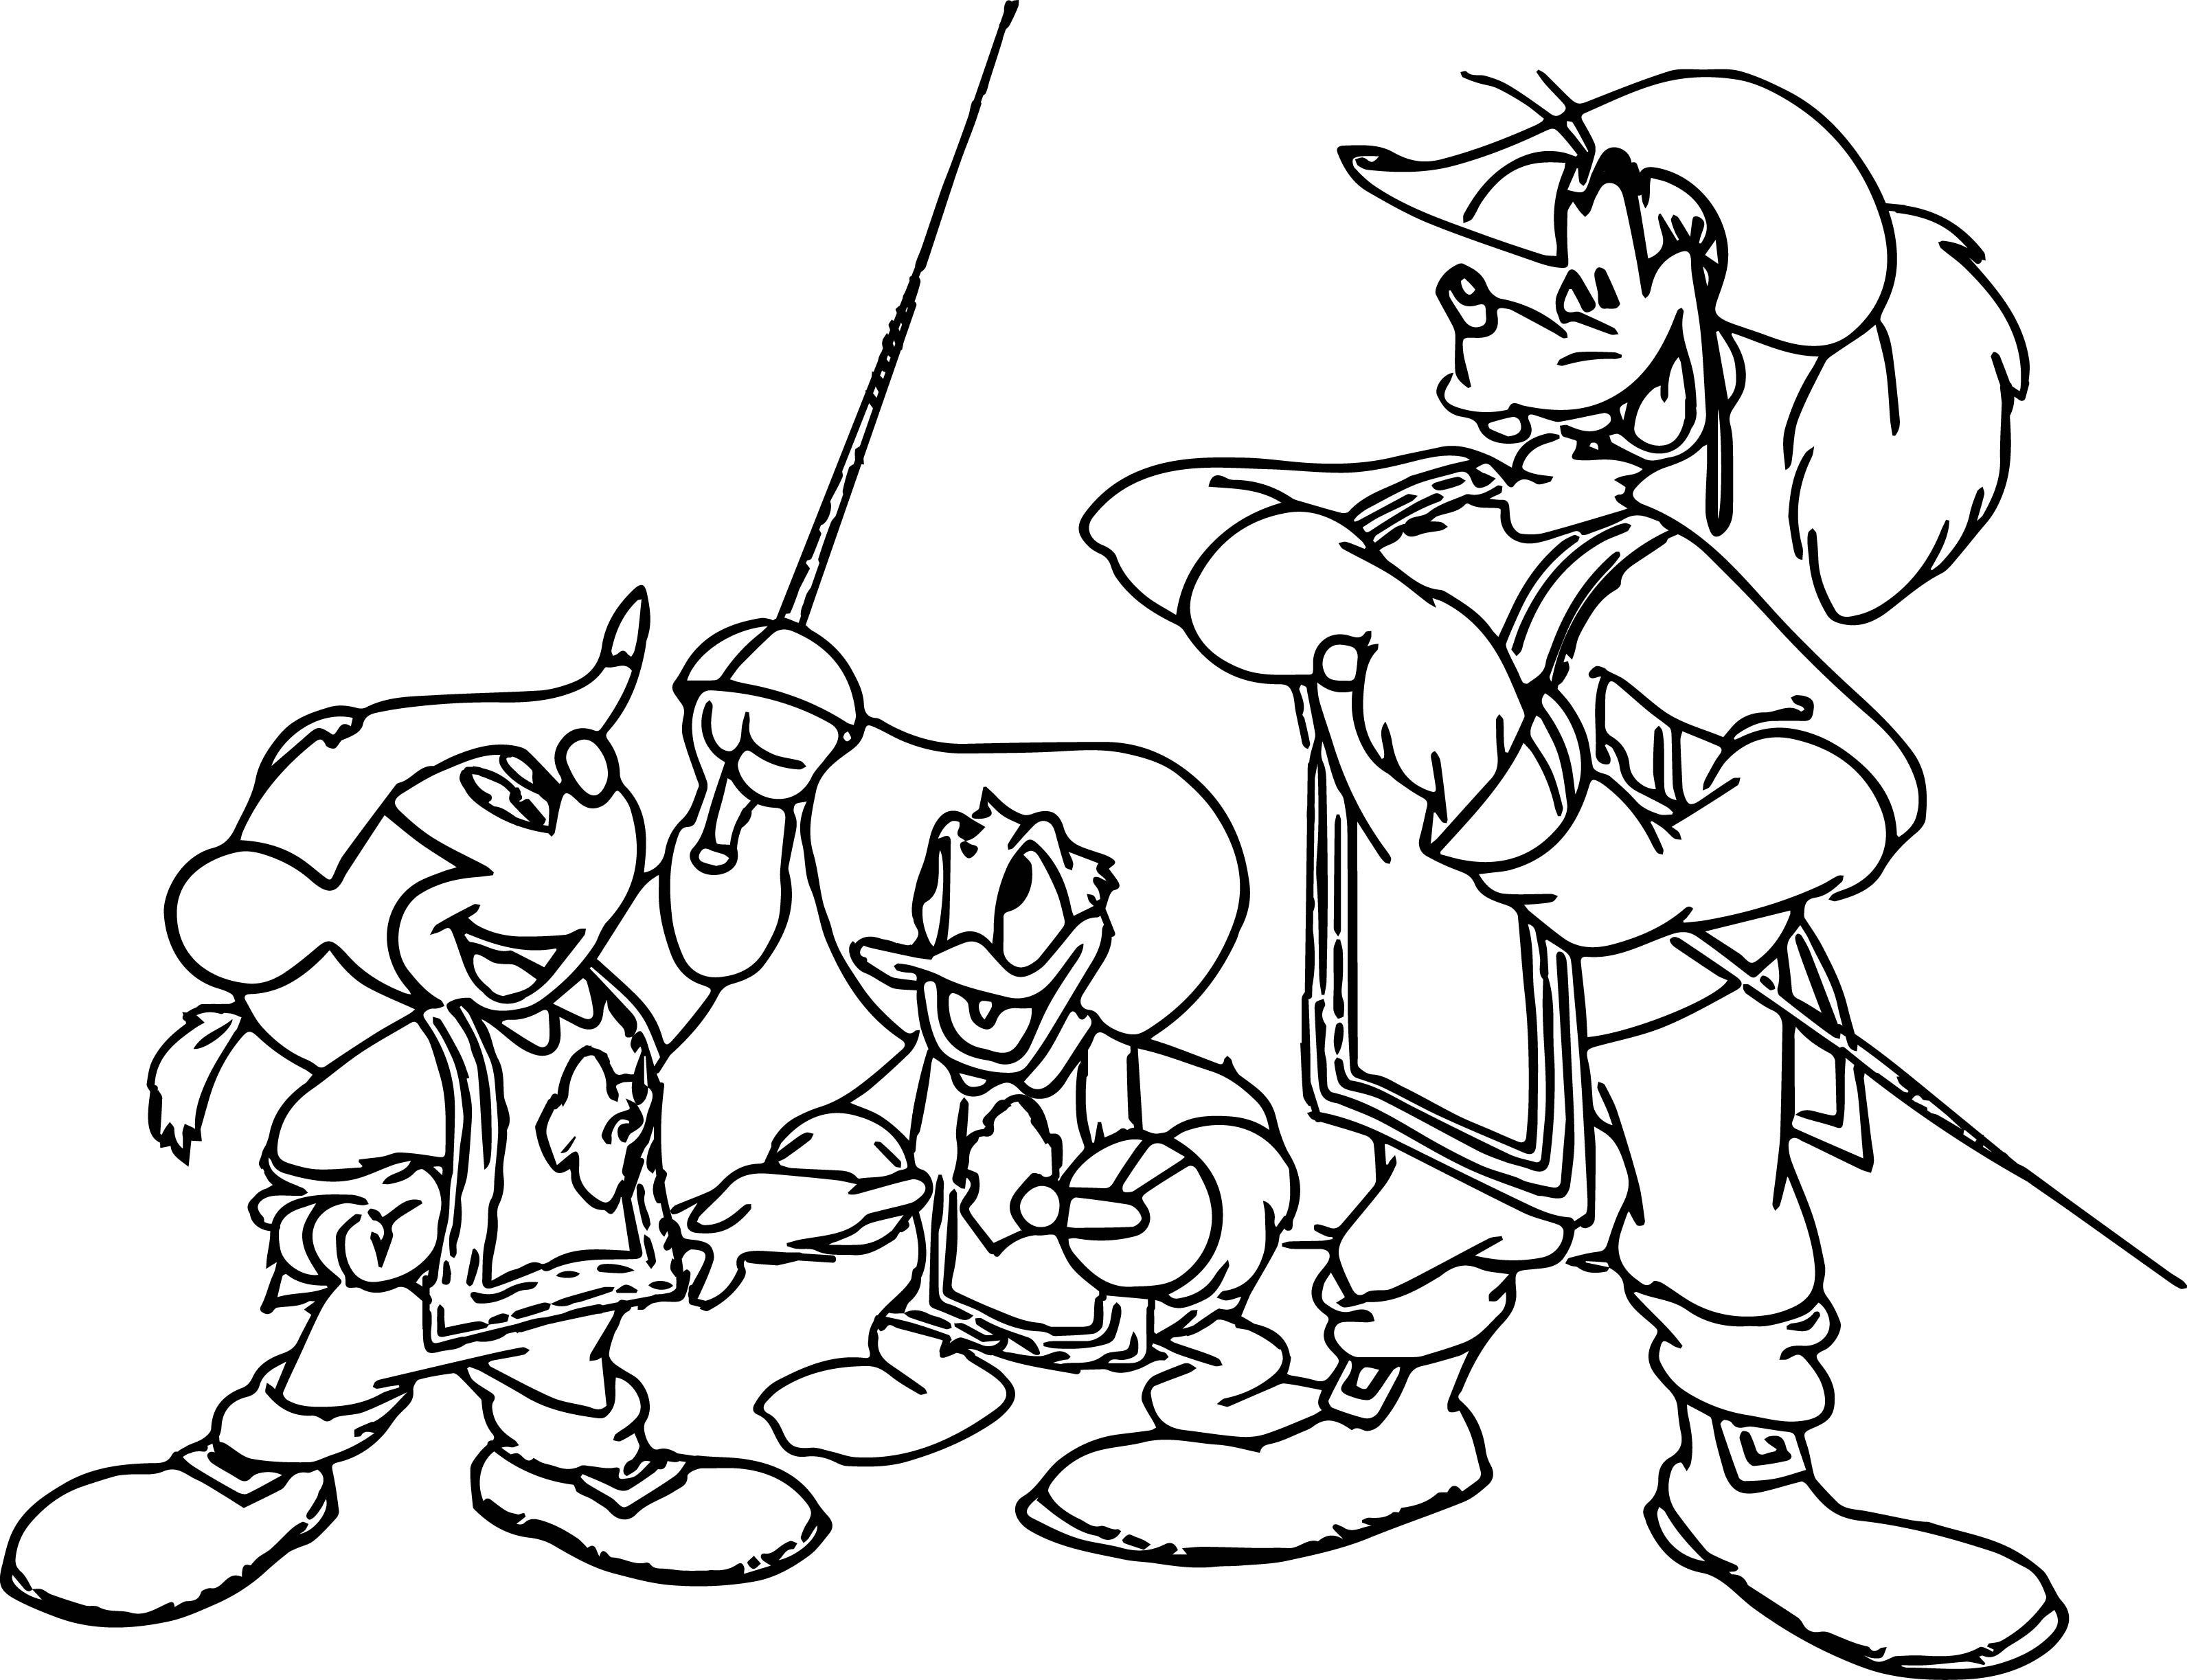 Mickey Mouse Musketeers Coloring Pages Mickey Donald Goofy The Three Musketeers Coloring Pages Mickey Mouse Musketeers Coloring Pages